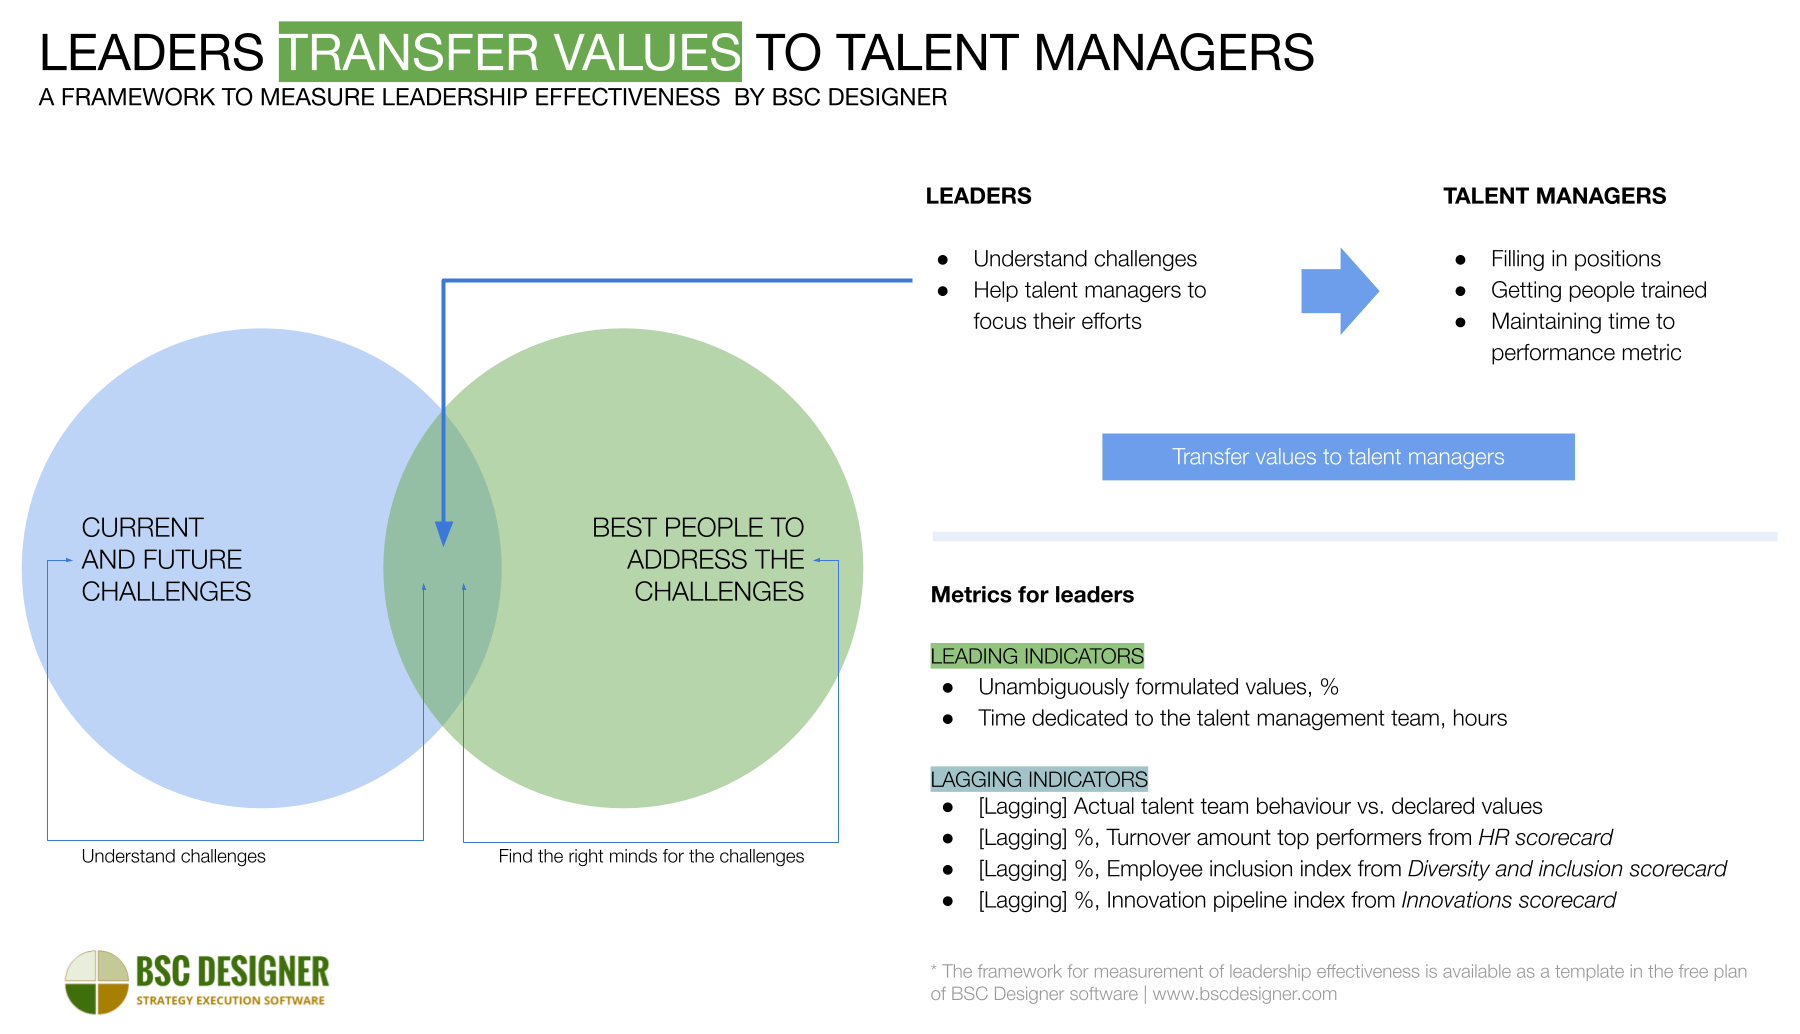 The role of leaders in talent management